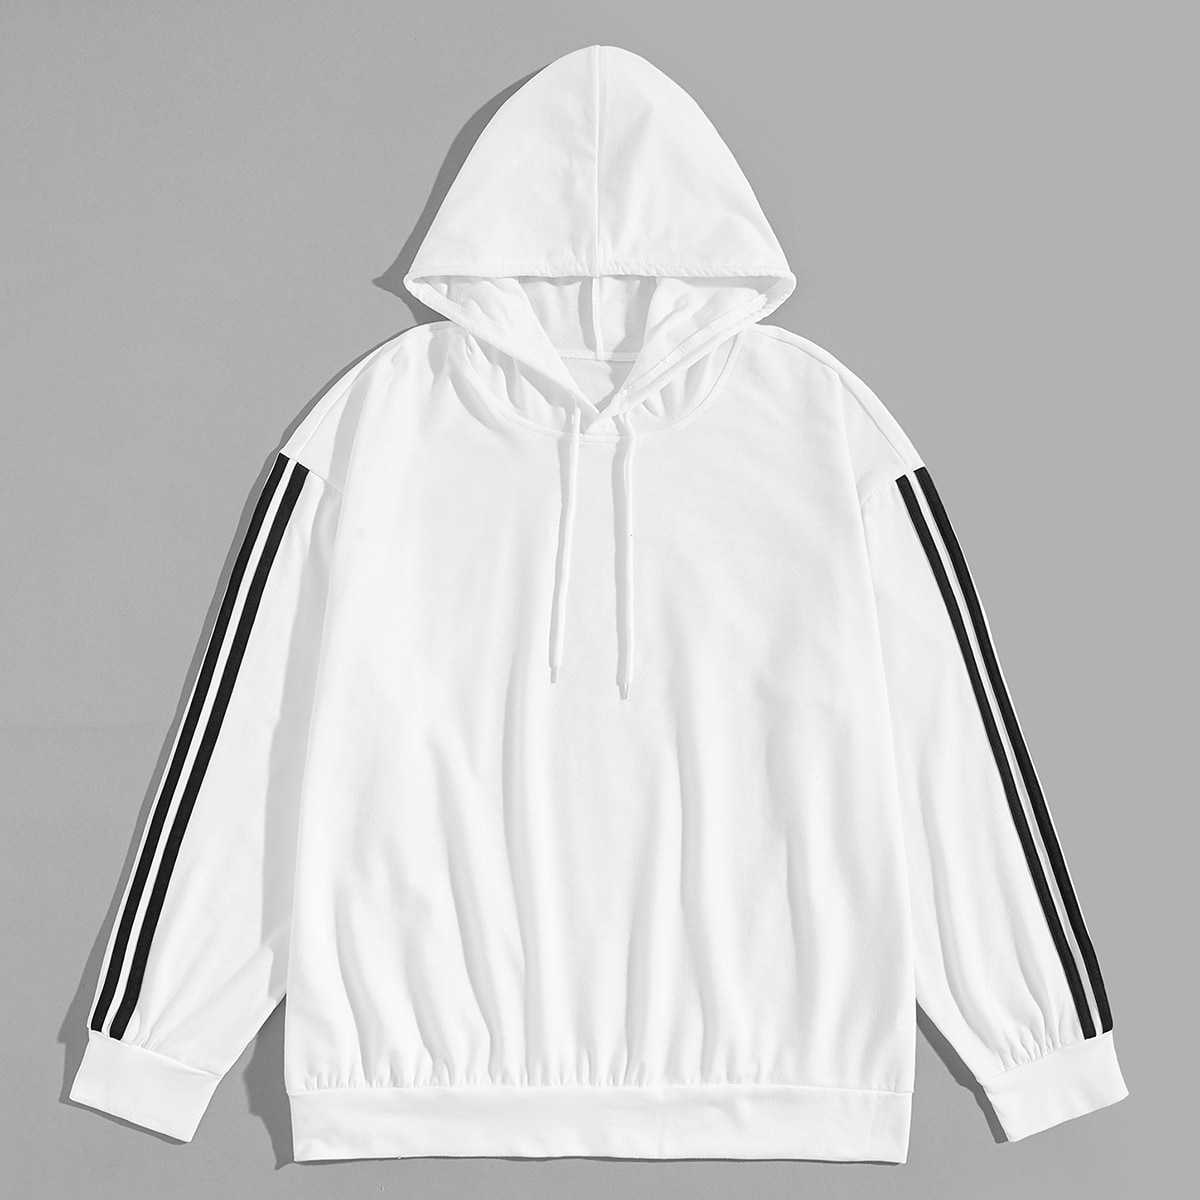 1Plus1 Guys Contrast Striped Tape Hooded Sweatshirt in White by ROMWE on GOOFASH